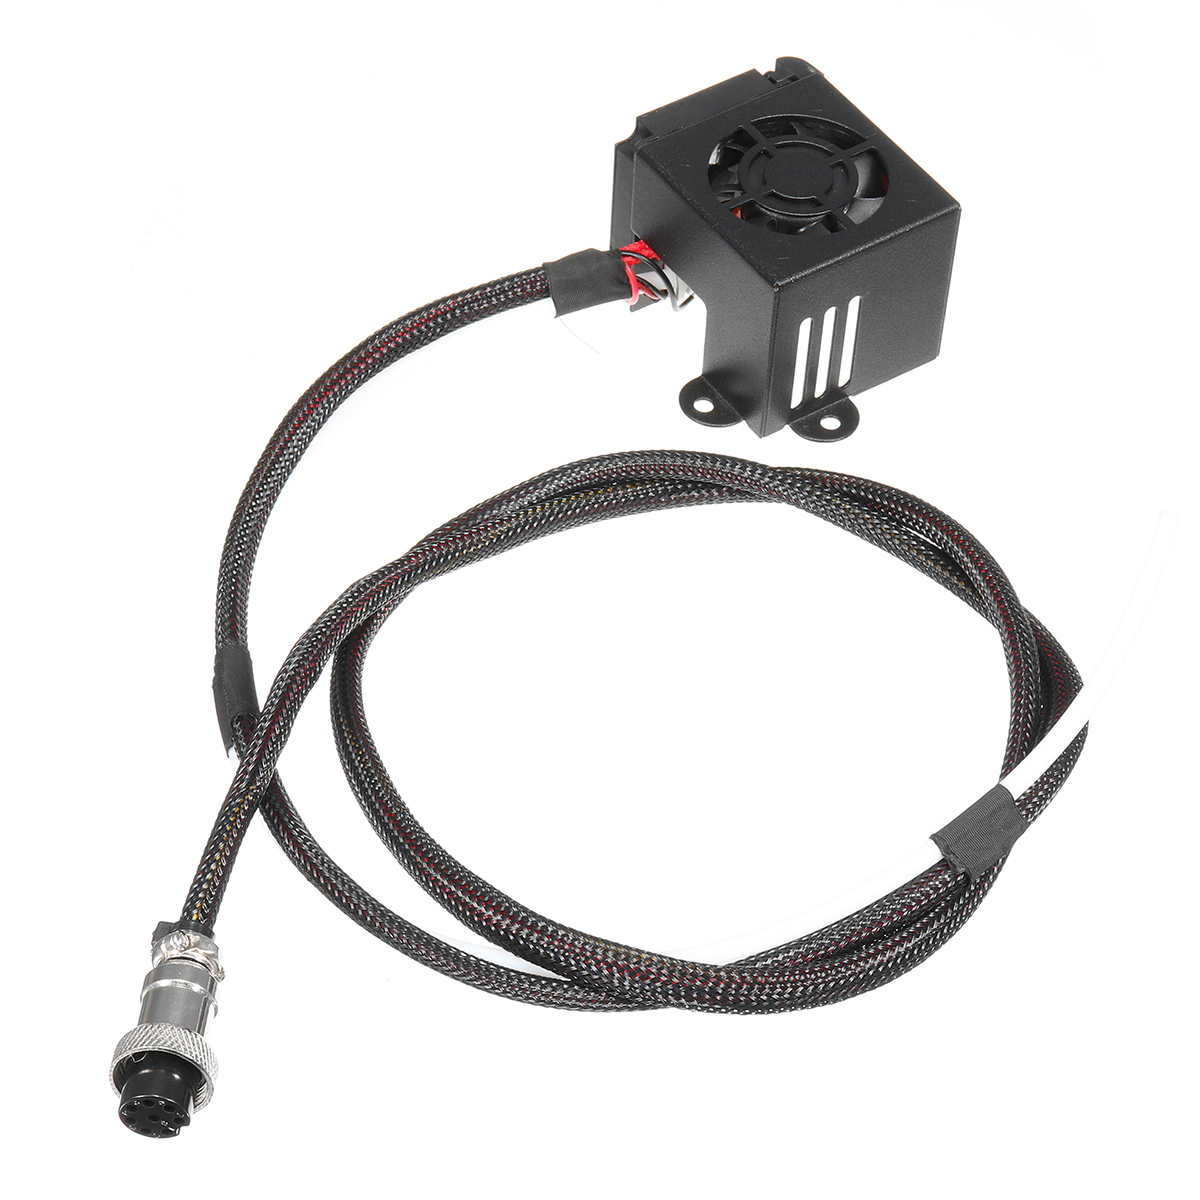 3D Printer Parts 0.4mm Nozzle Hot End Extruder Kits With Cooling Fan For Creality CR-10